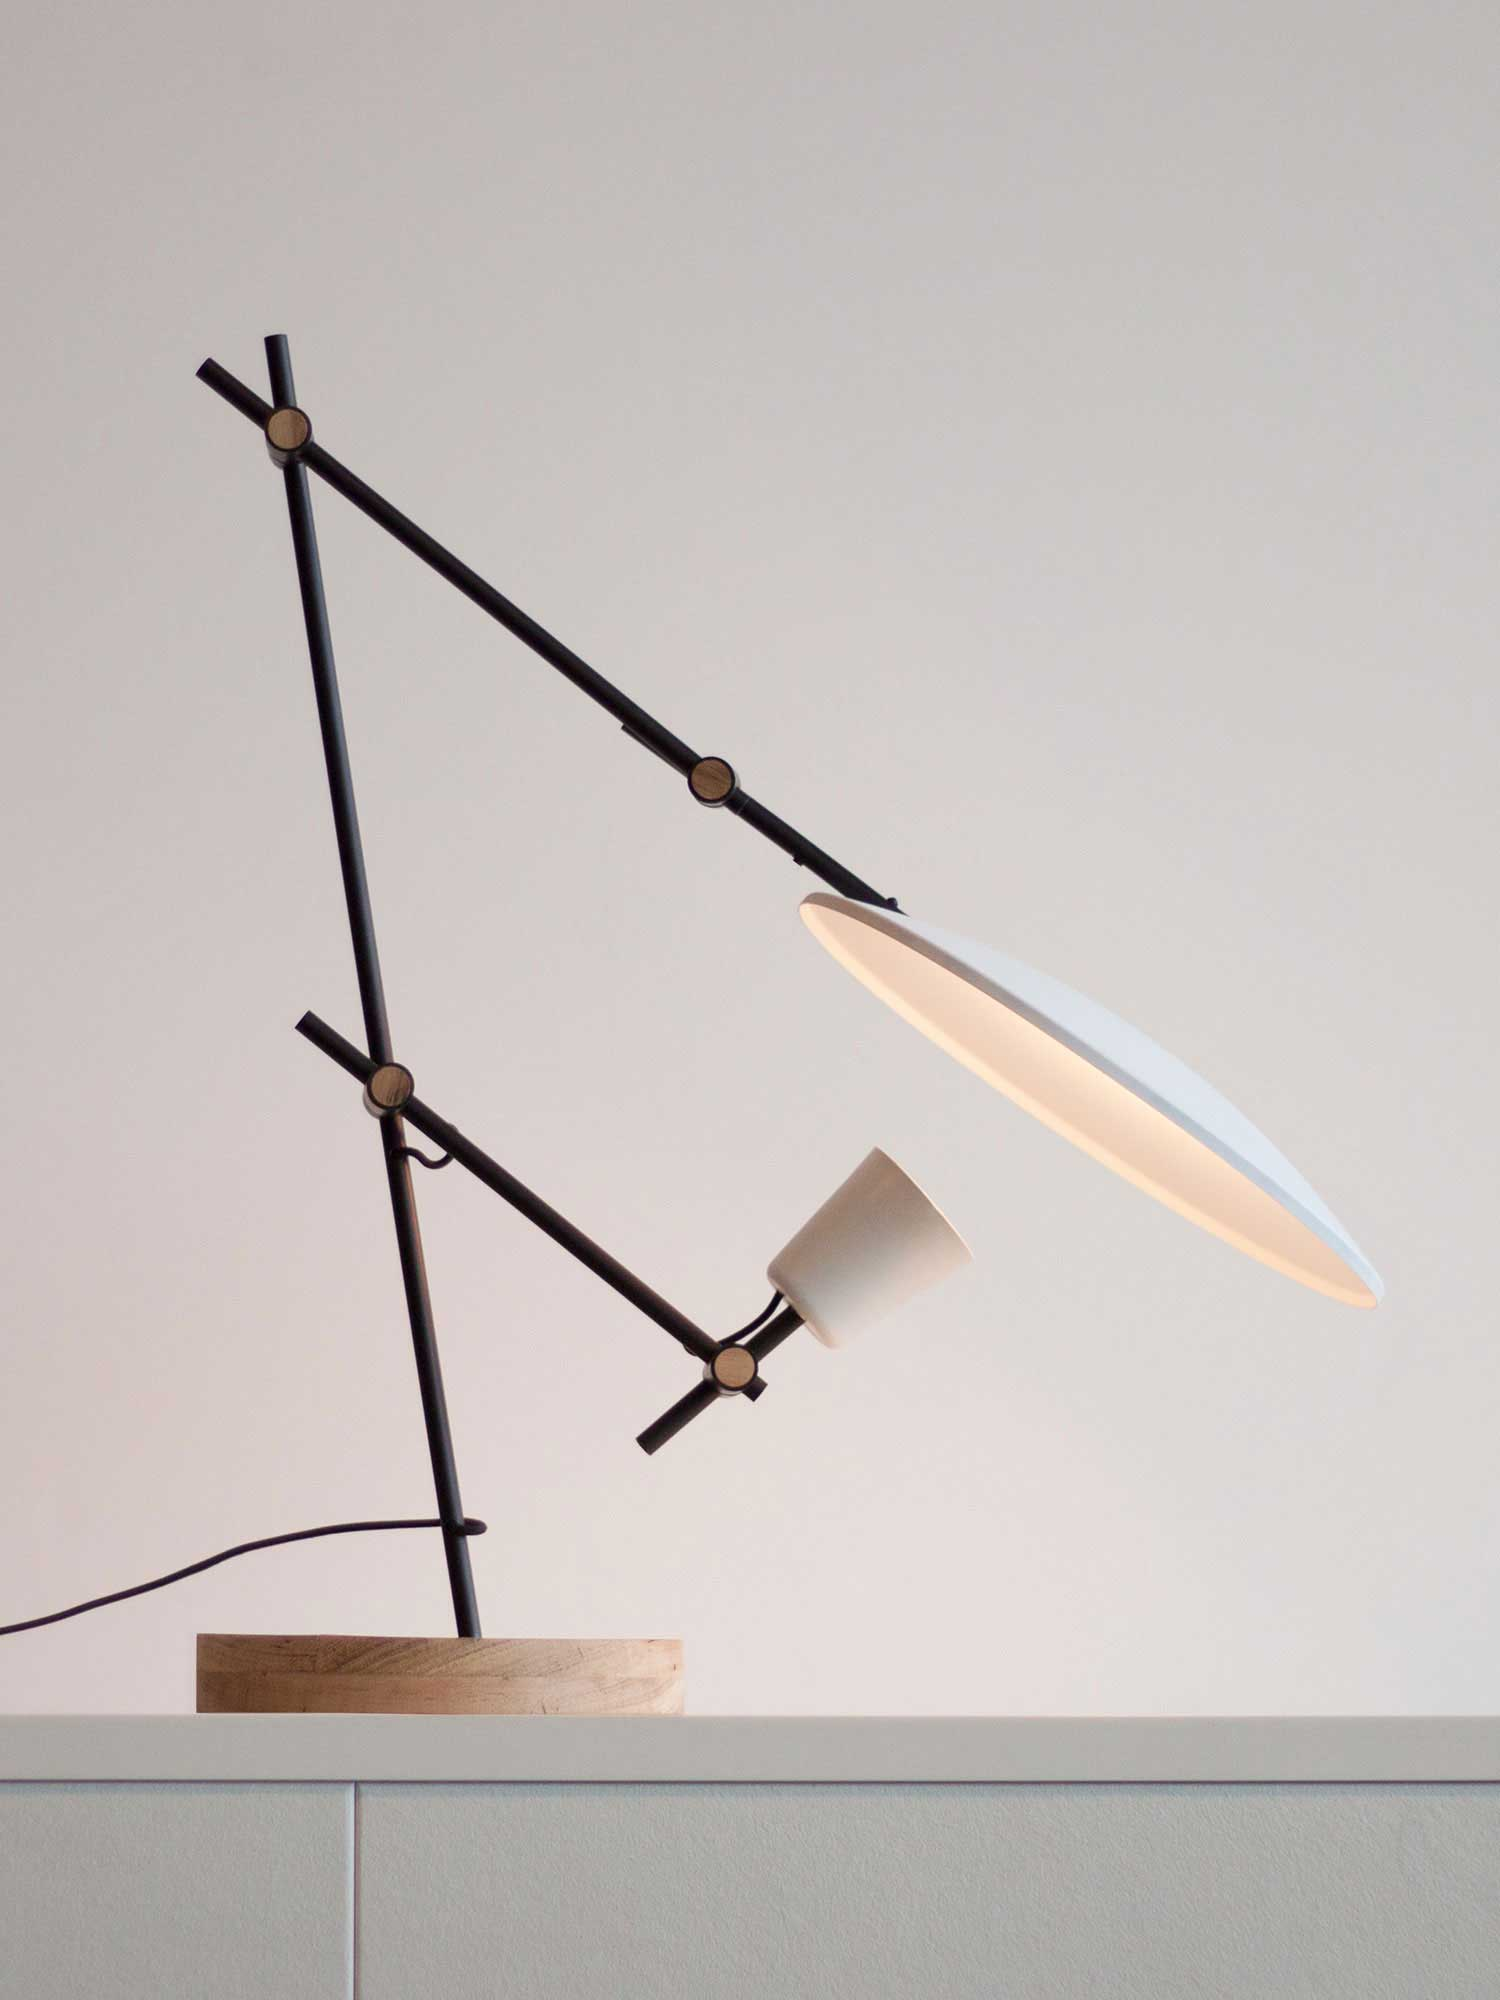 Crescent Table Lamp by Lewis Ye, RMIT Student | Yellowtrace